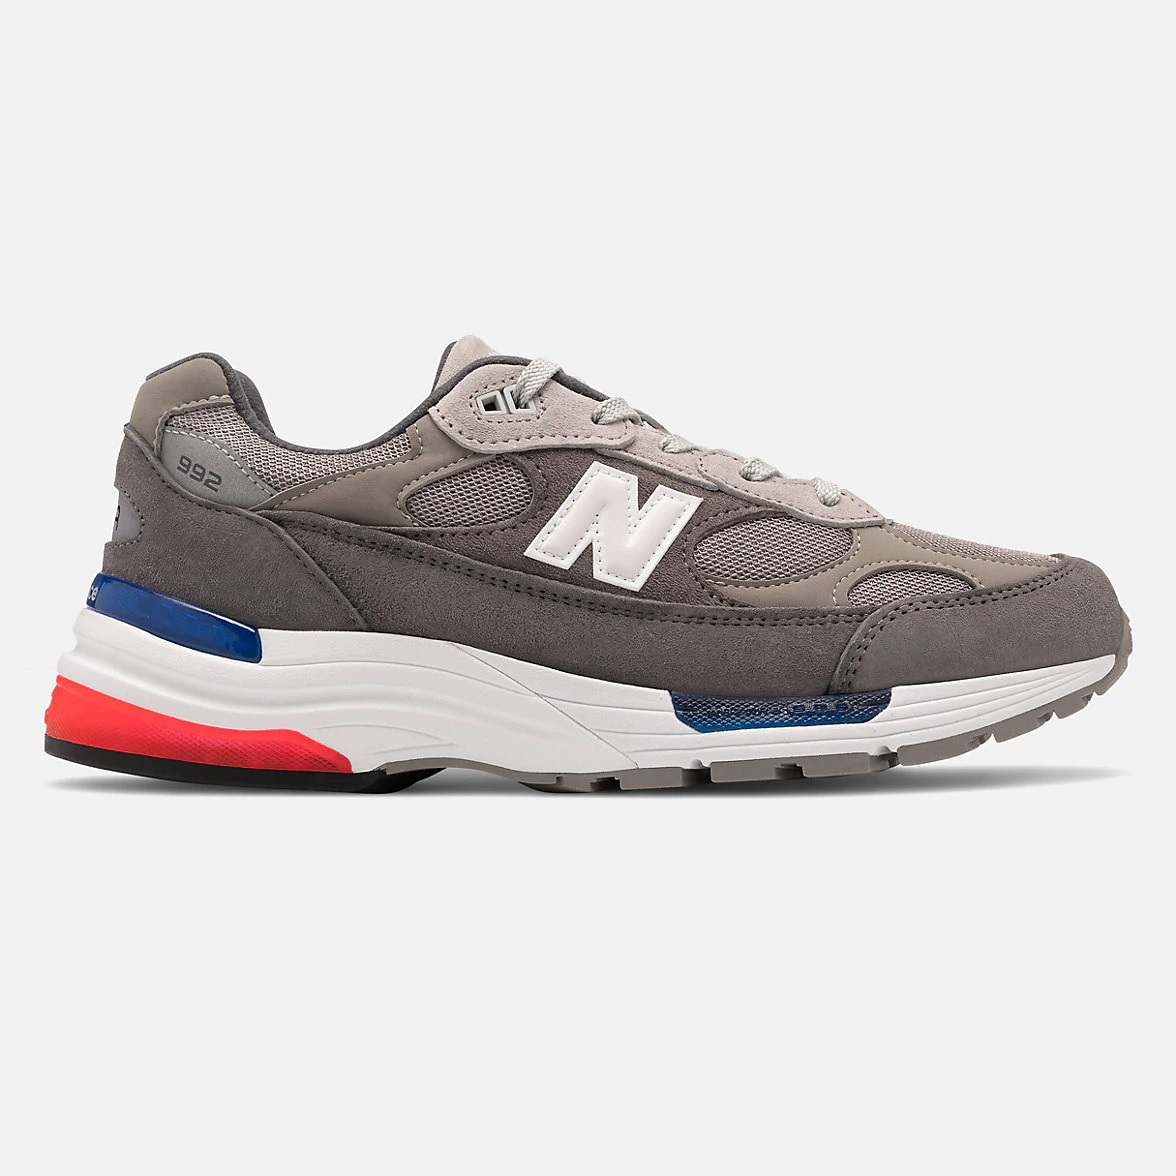 New Balance 992 'Grey/Blue'}